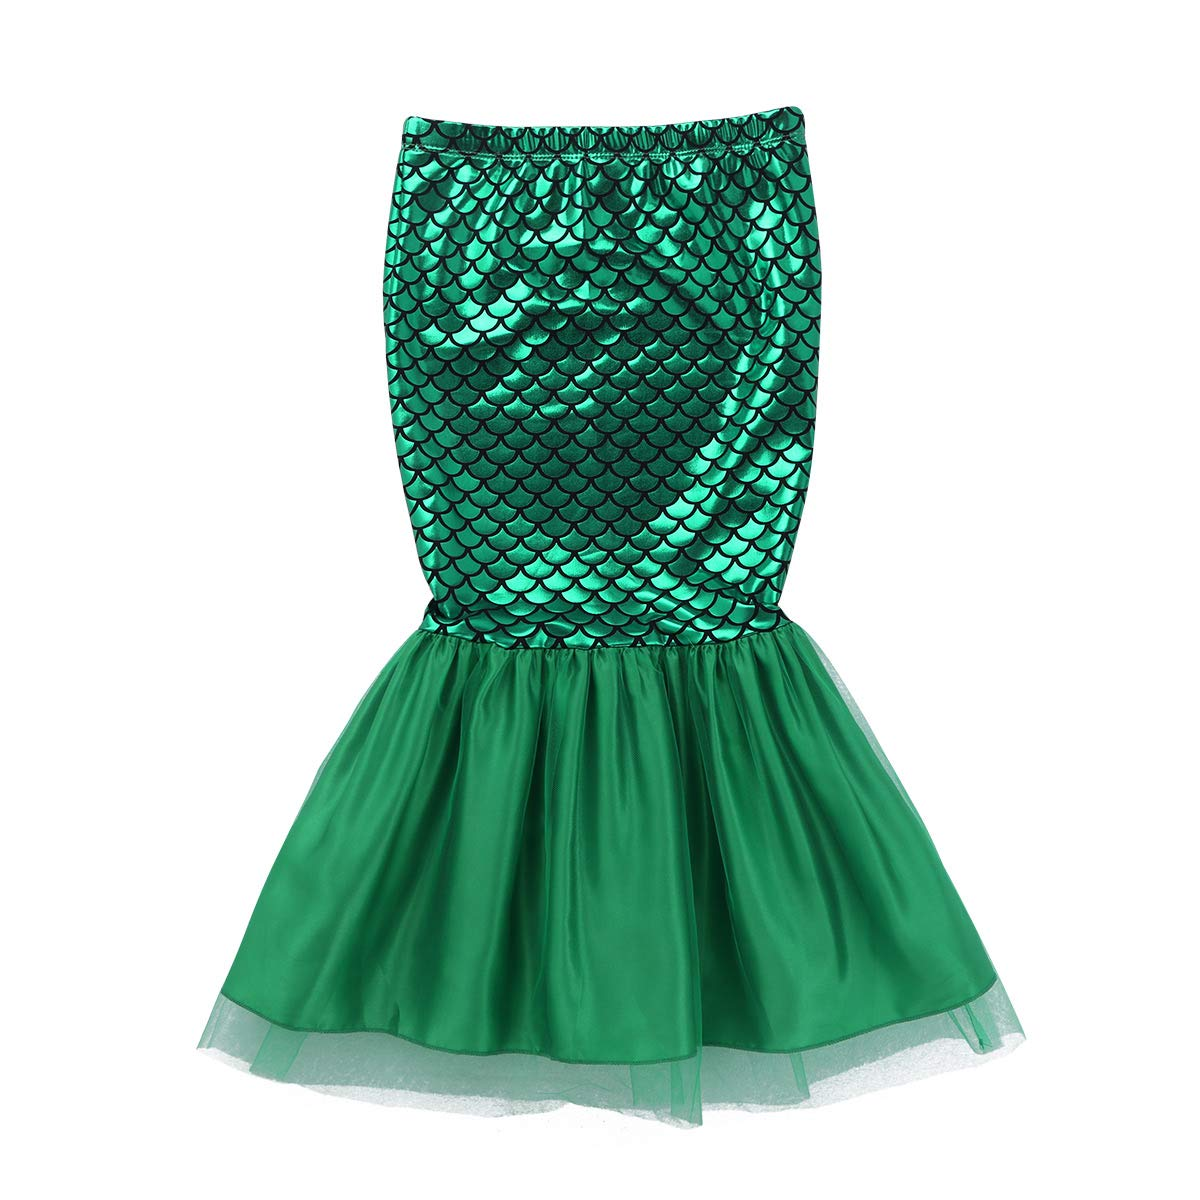 inhzoy Kids Girls Sequins Fish Scale Pattern Little Mermaid Tail Halloween Role Play Costume Skirts